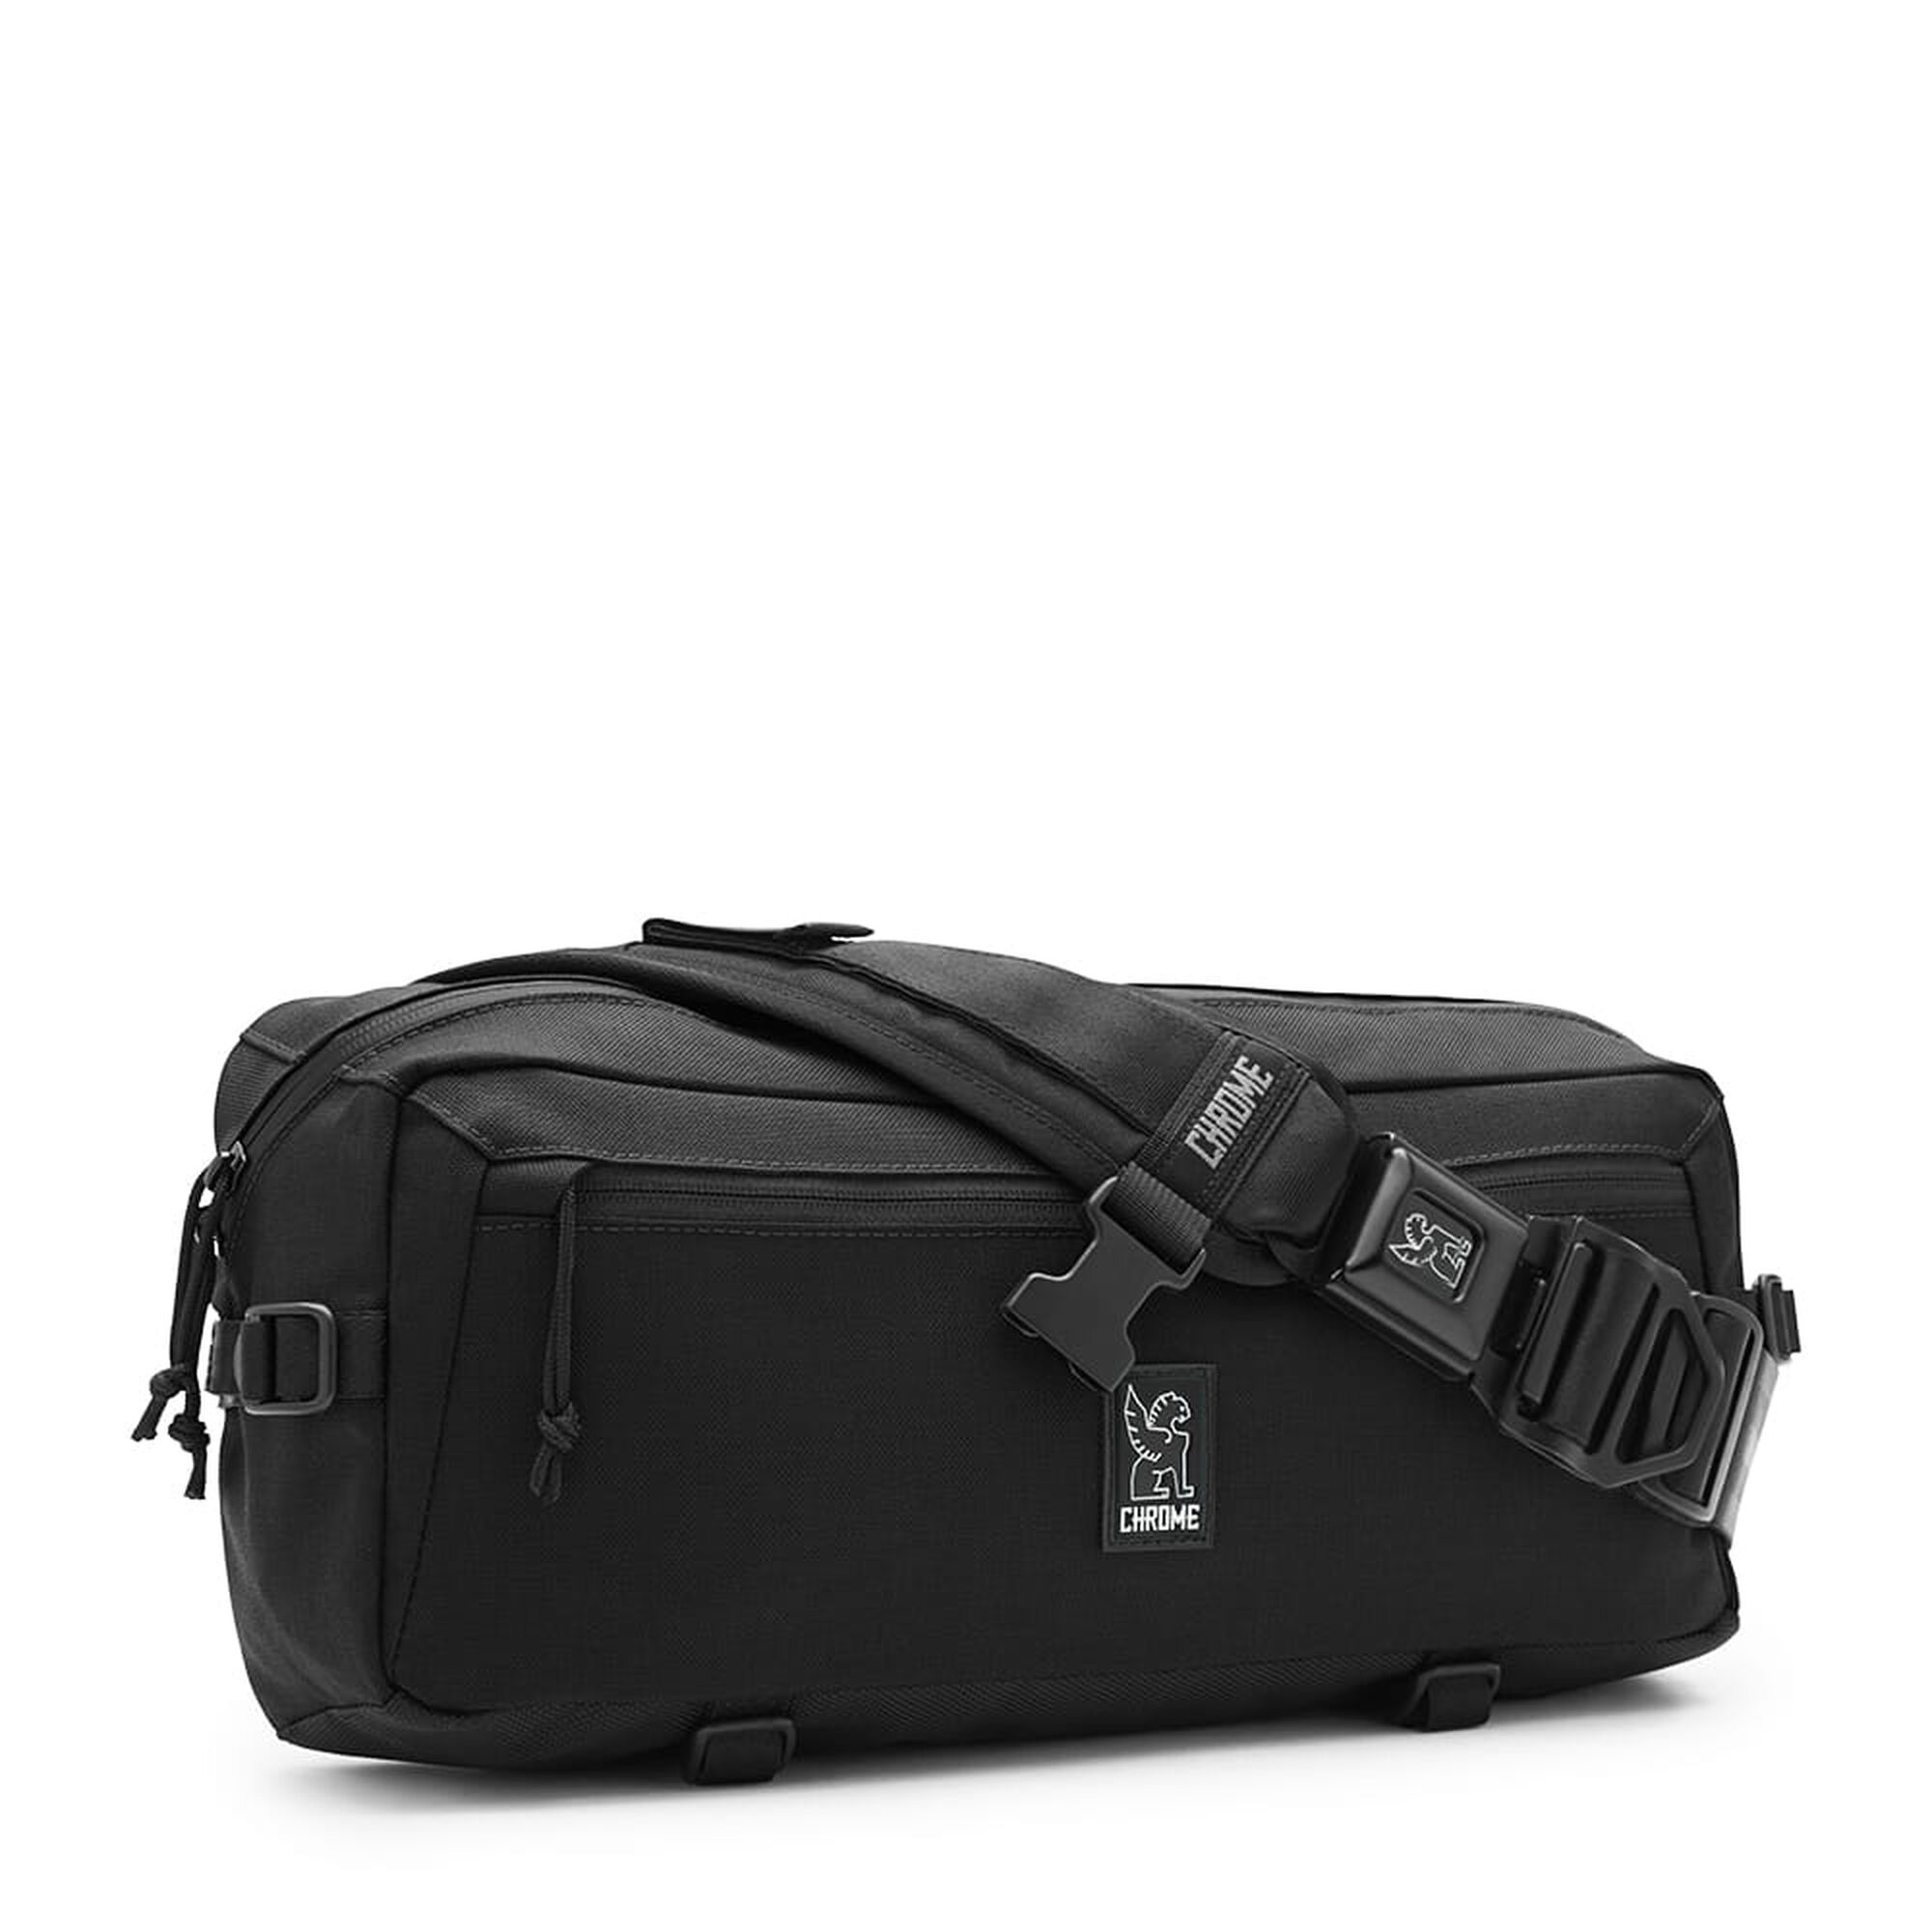 Kadet Nylon Messenger Bag - Bag Built for the City - 8